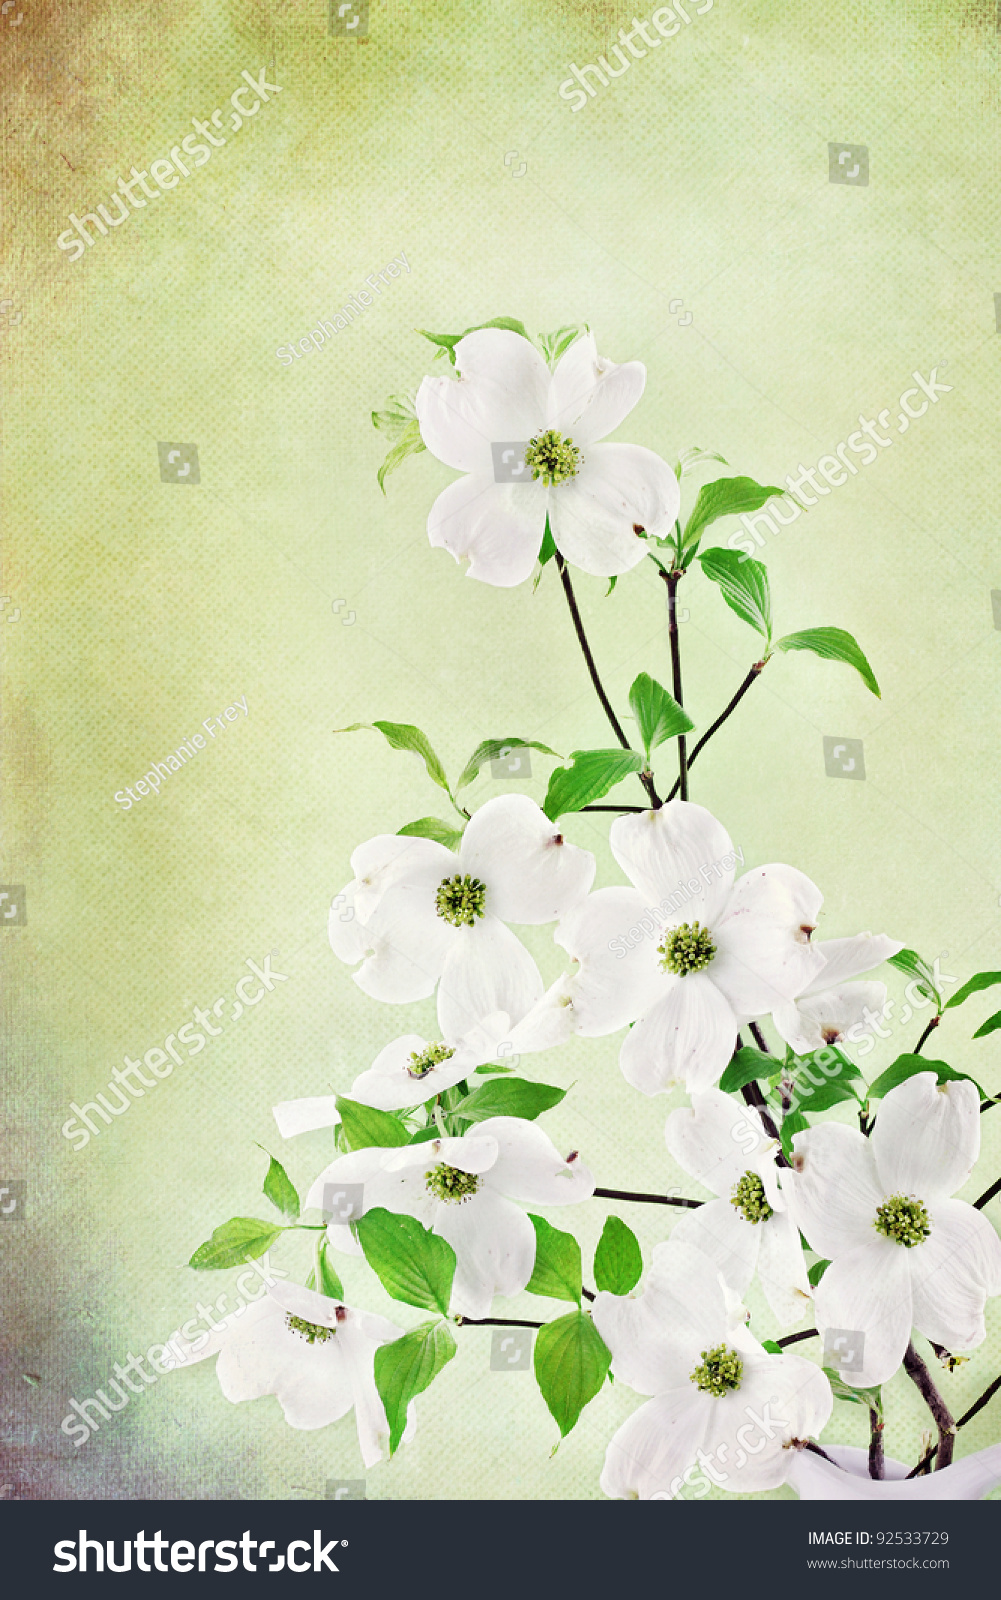 Textured Image Bouquet White Dogwood Blossoms Stock Photo (Royalty ...